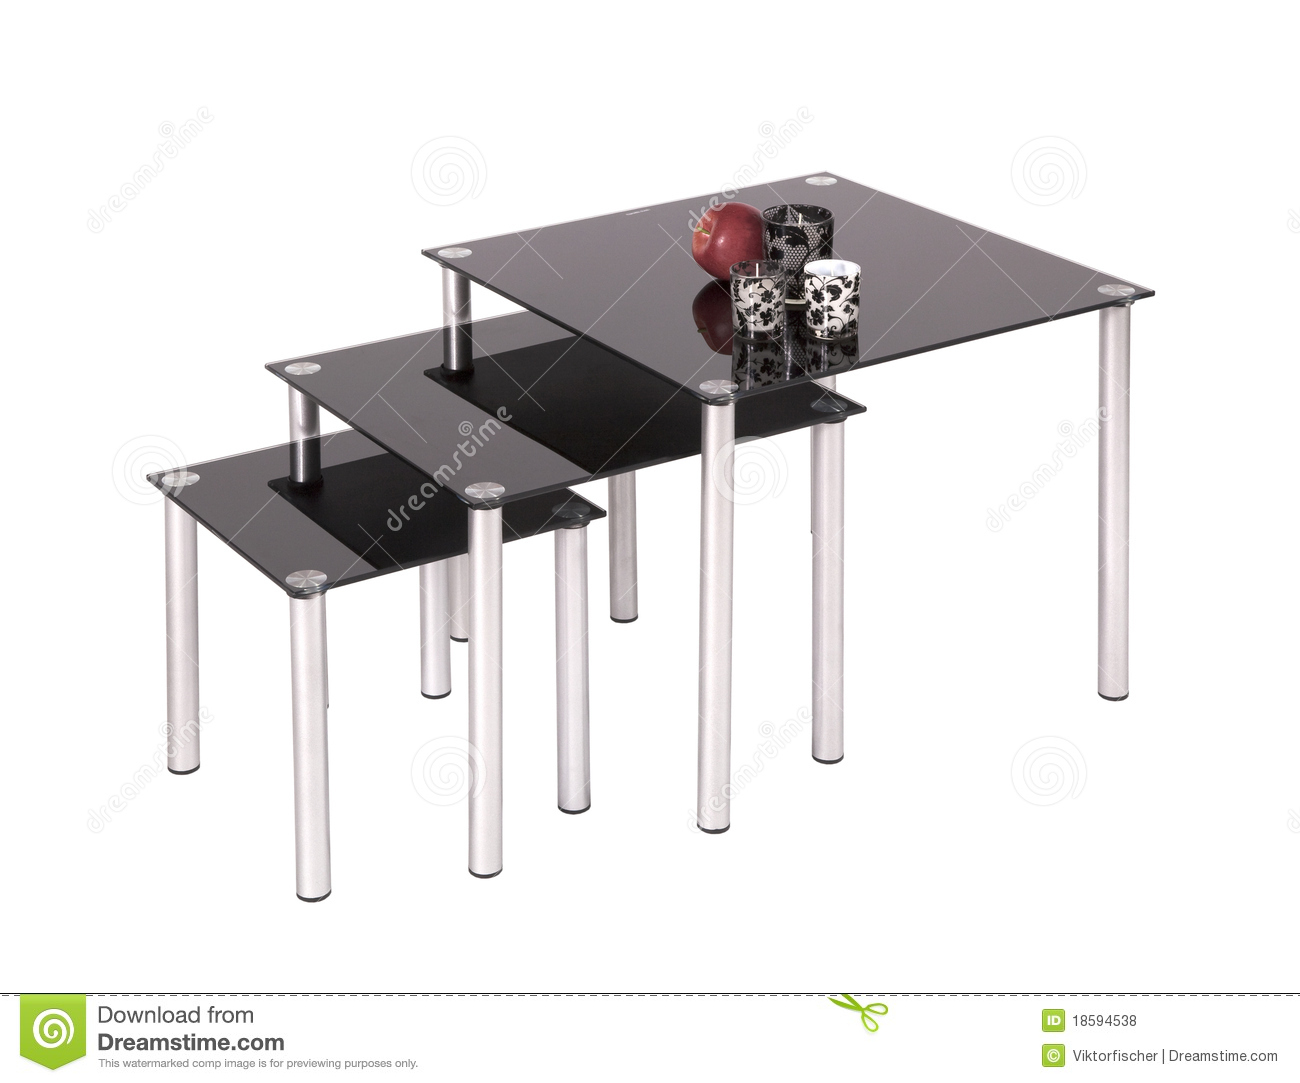 Black glass top dining tables royalty free stock photos - Black glass top dining table ...